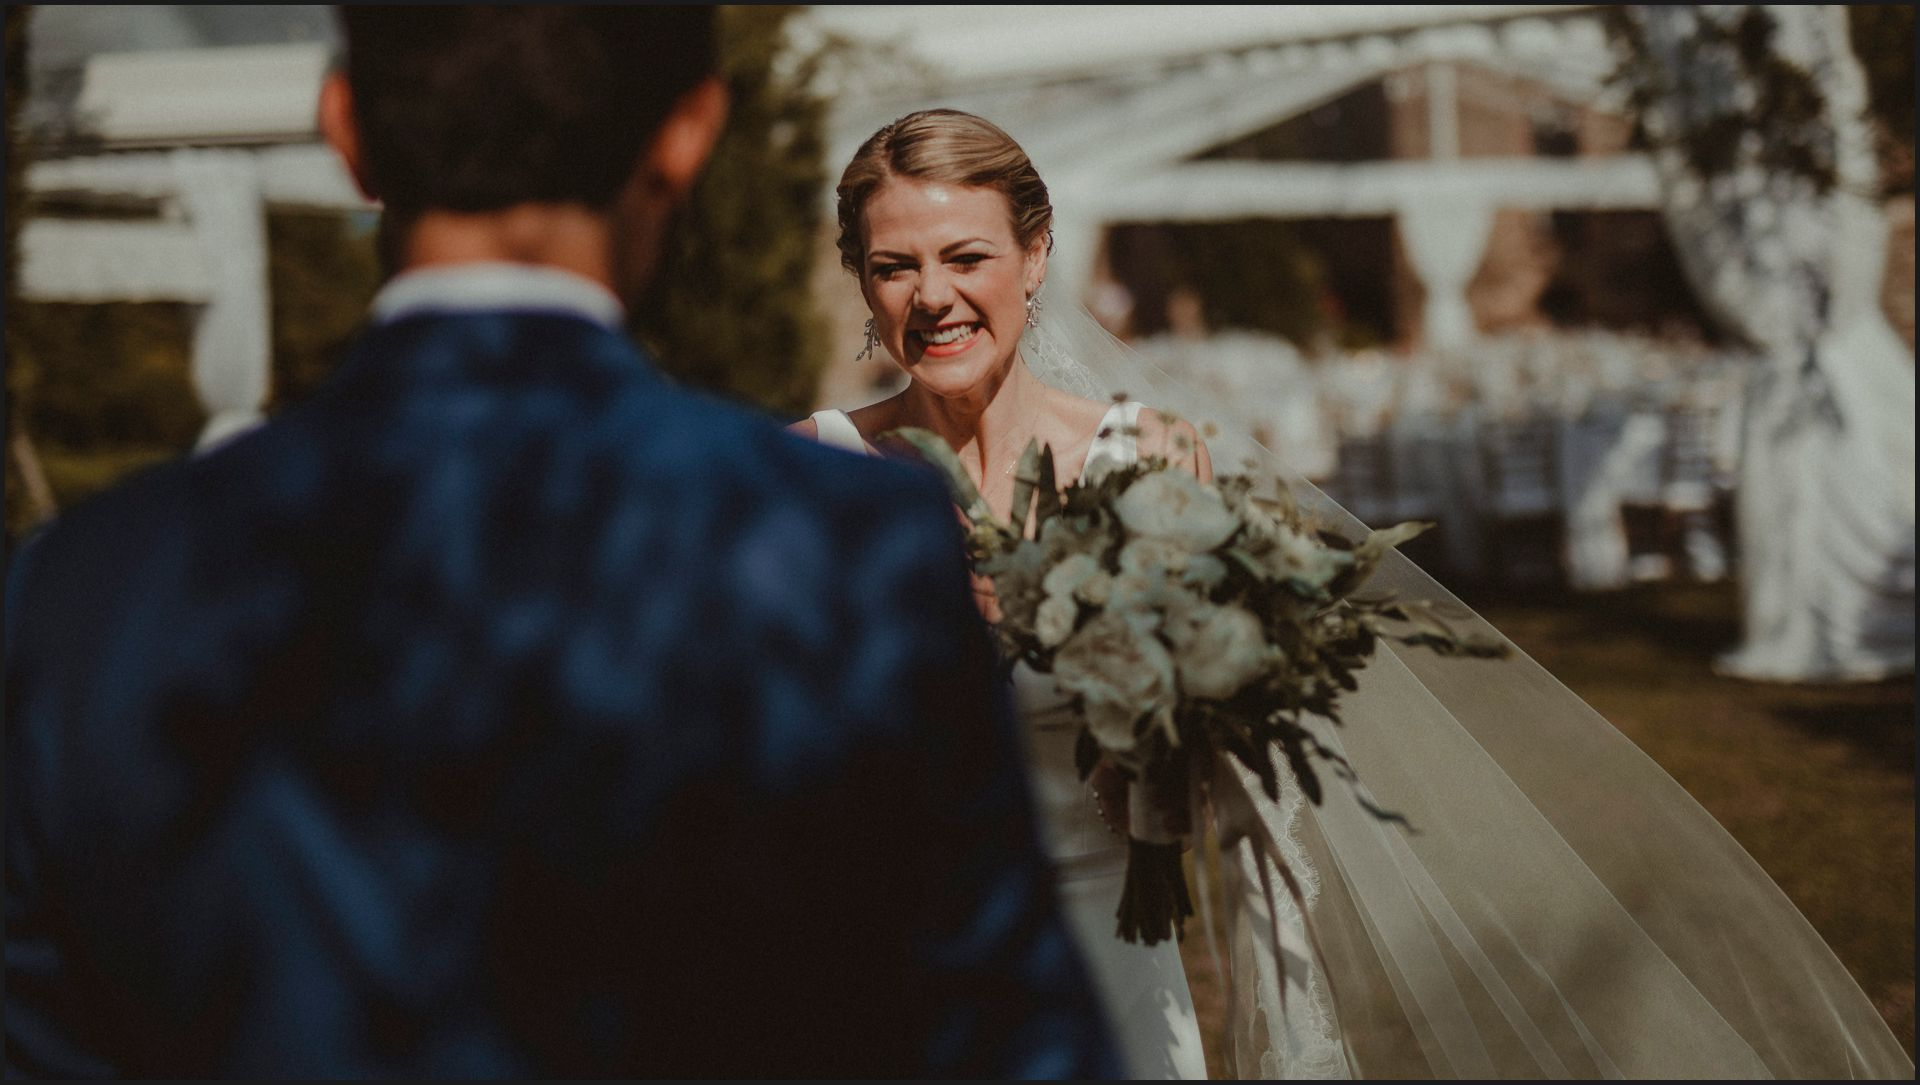 tenuta di canonica, umbria, wedding, first look, bride, groom, love